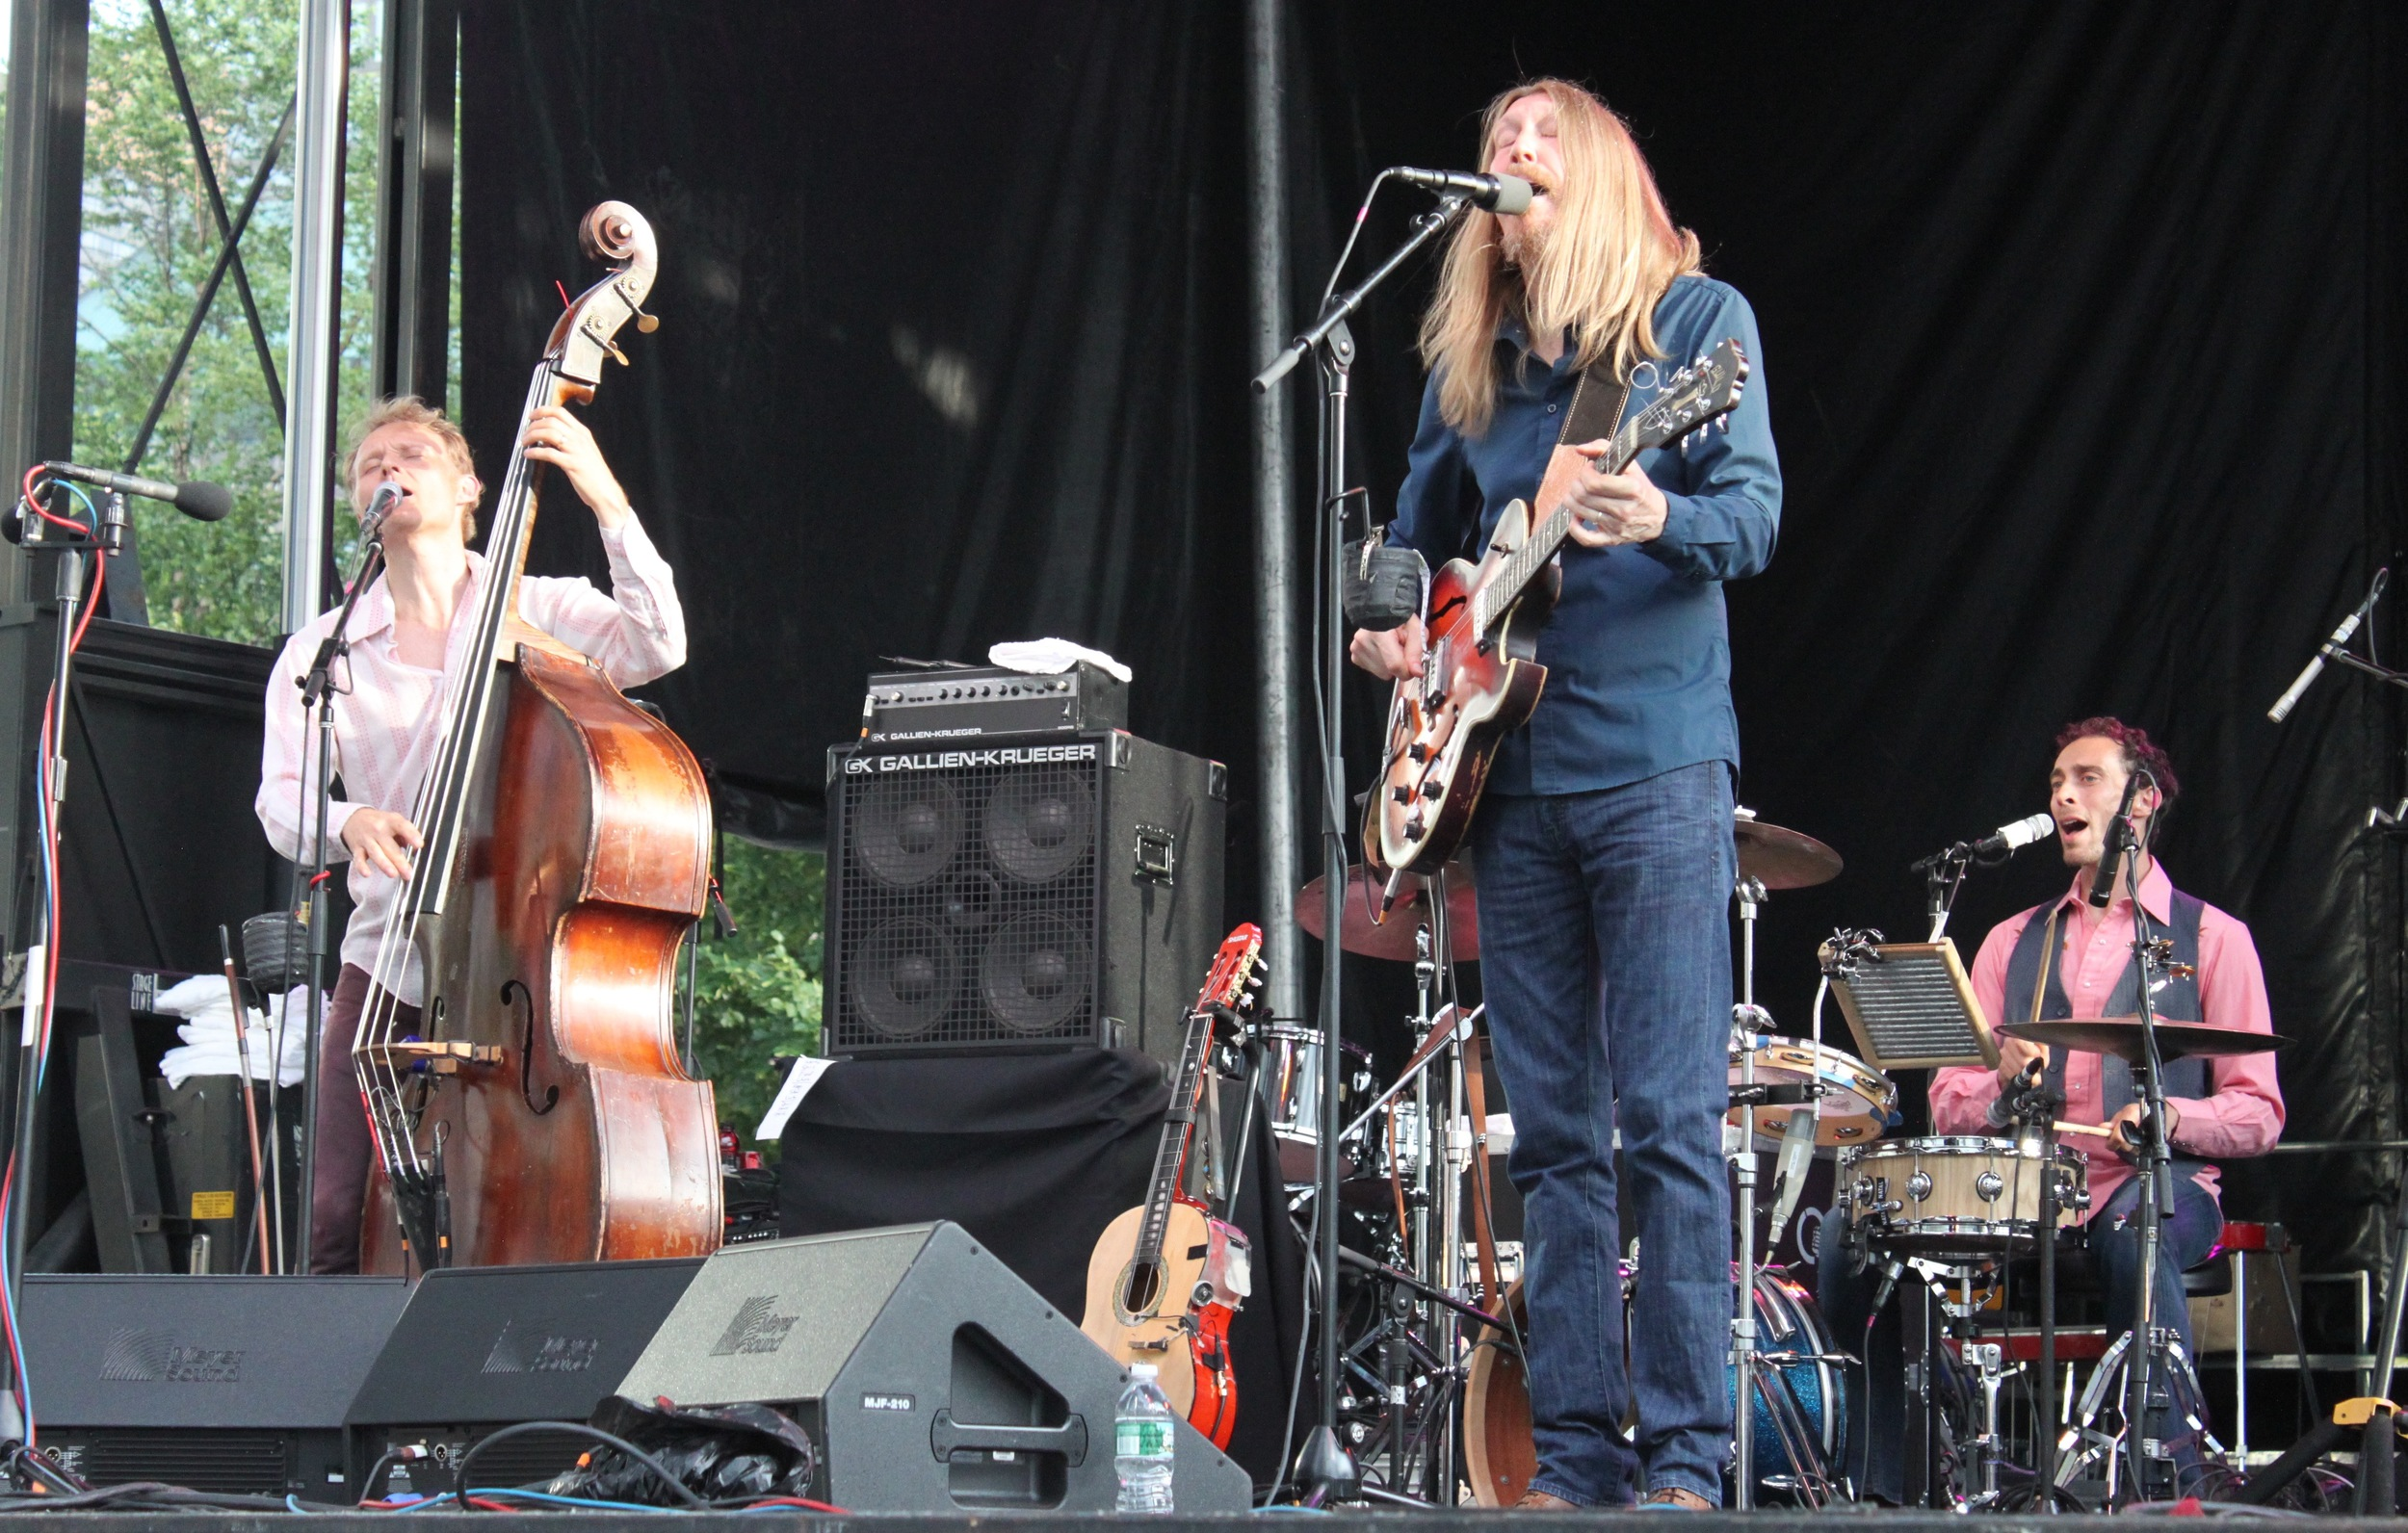 The Wood Brothers perform live at The Lowdown Hudson Music Fest (L to R: Chris and Oliver Wood, and Jano Wix).